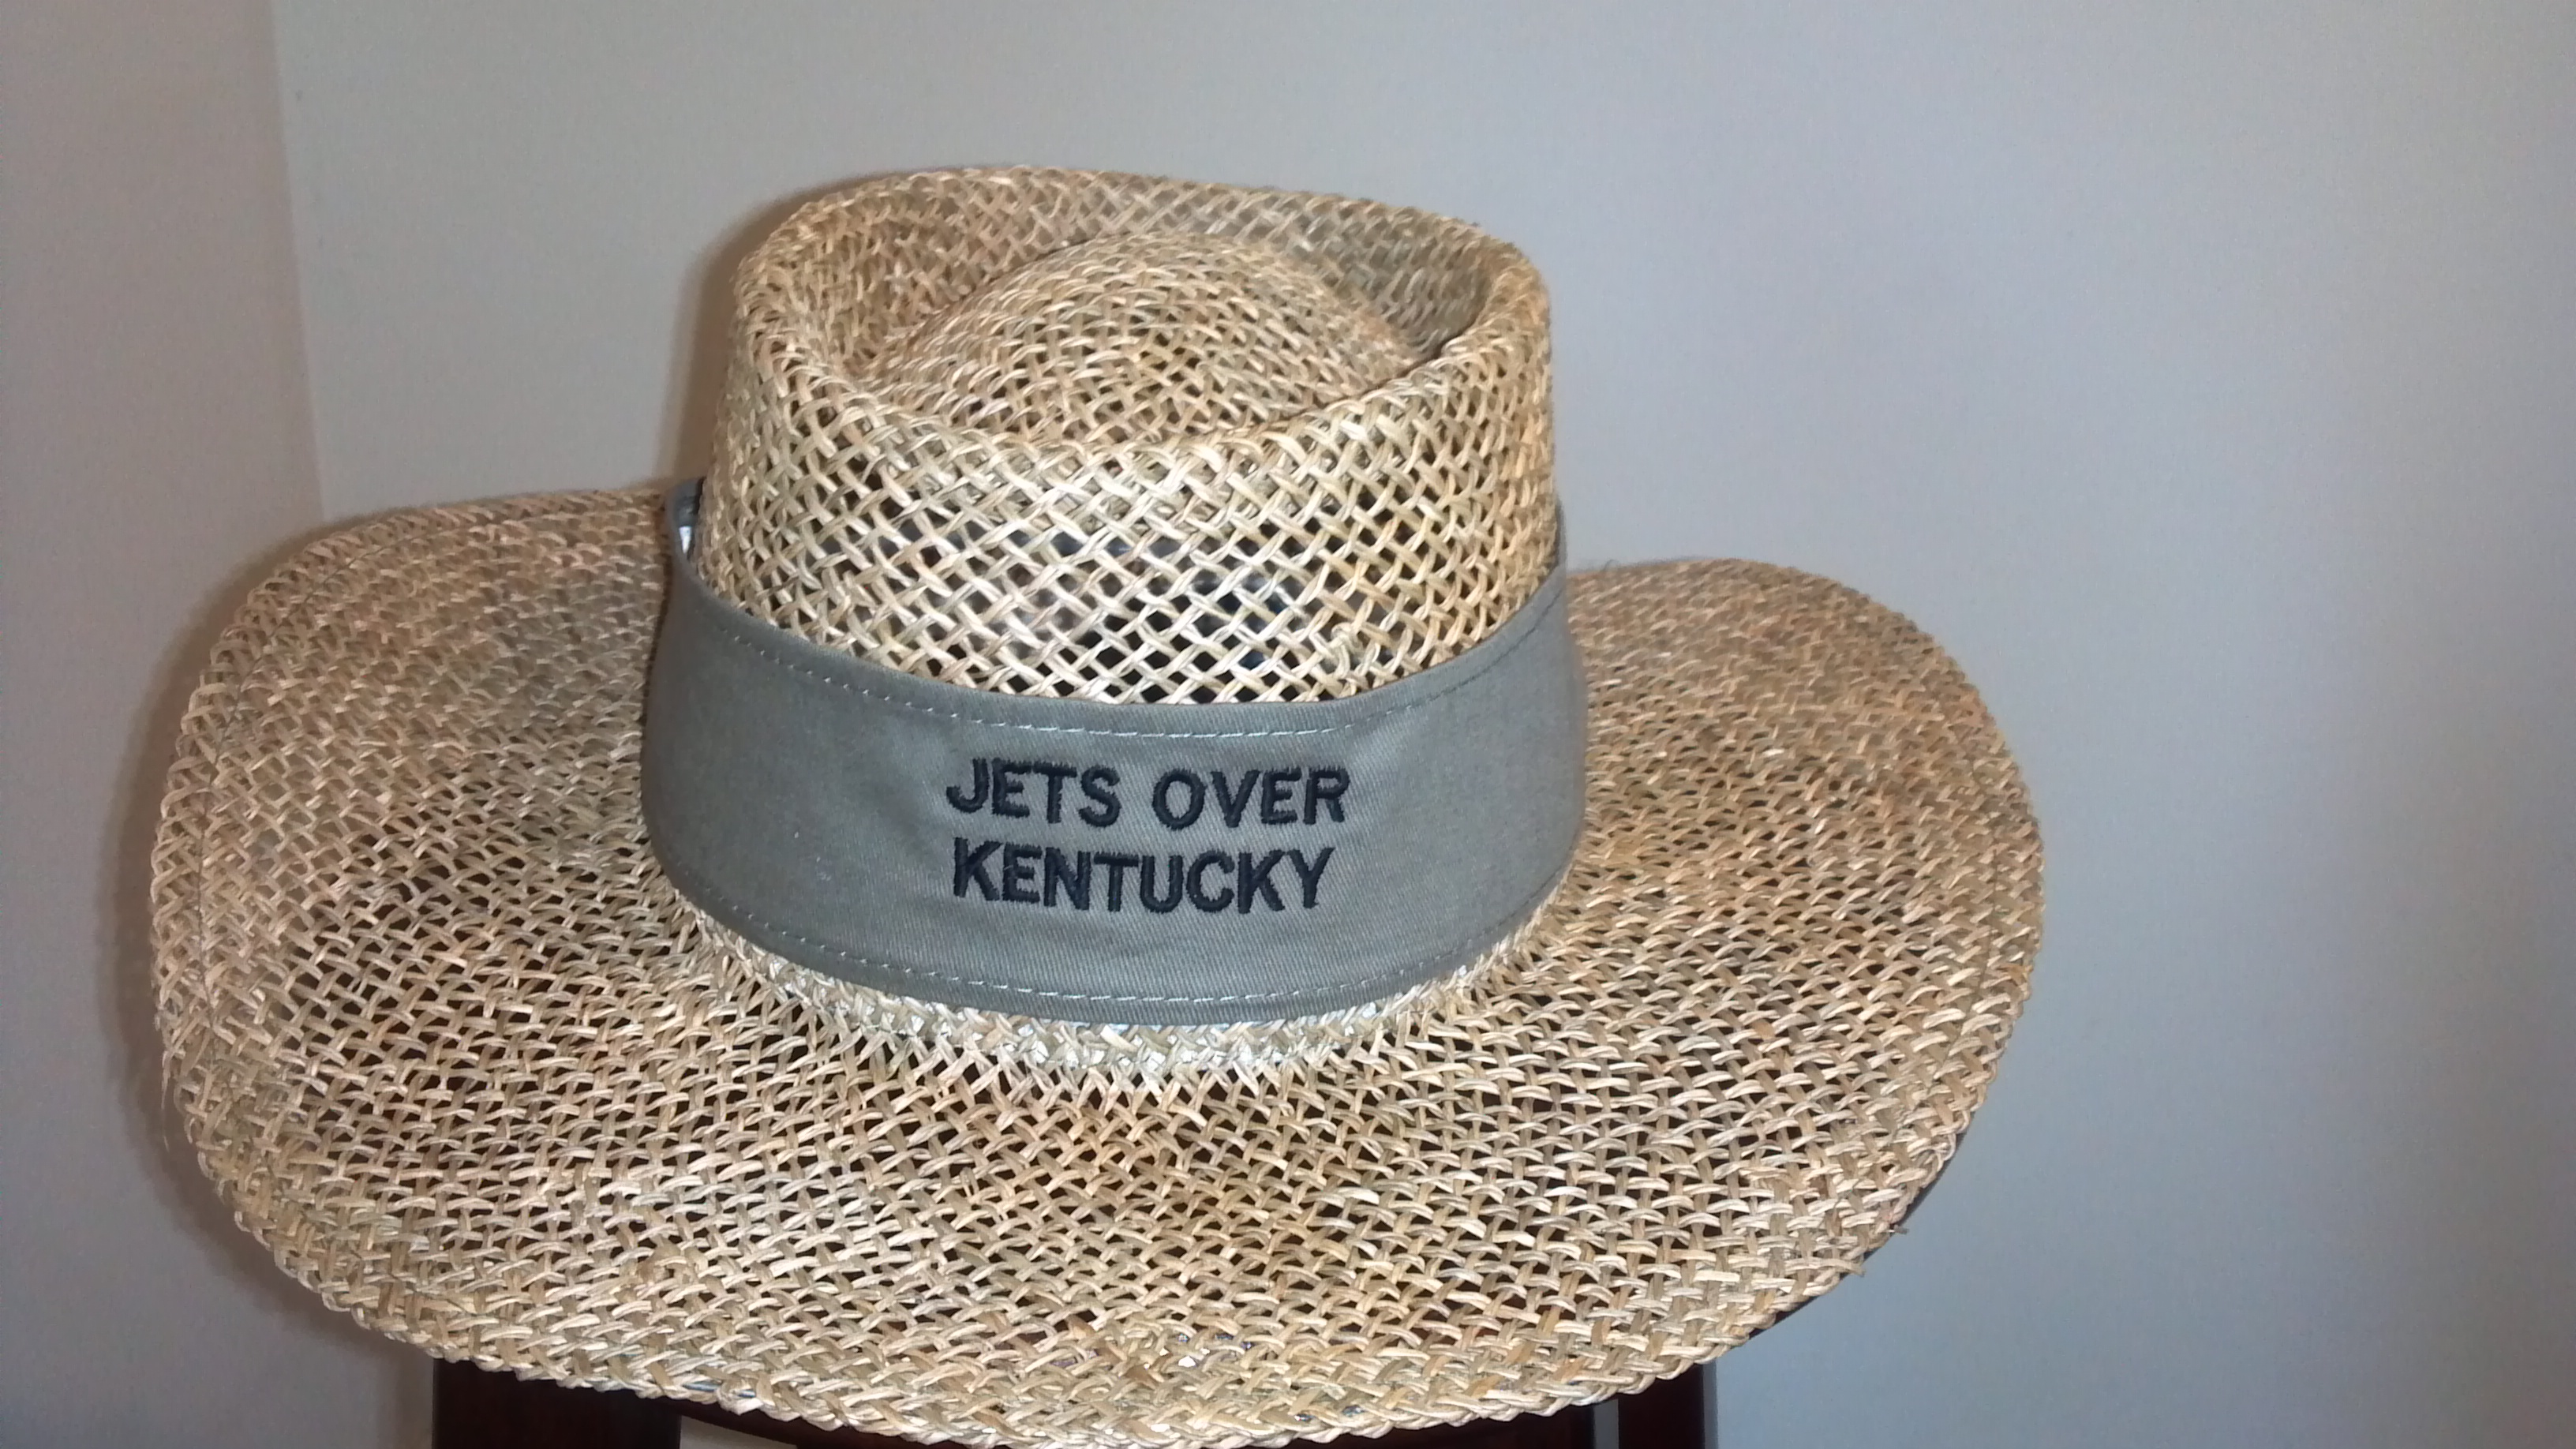 Click image for larger version  Name:Hat Picture 2.jpg Views:46 Size:1.35 MB ID:2003634